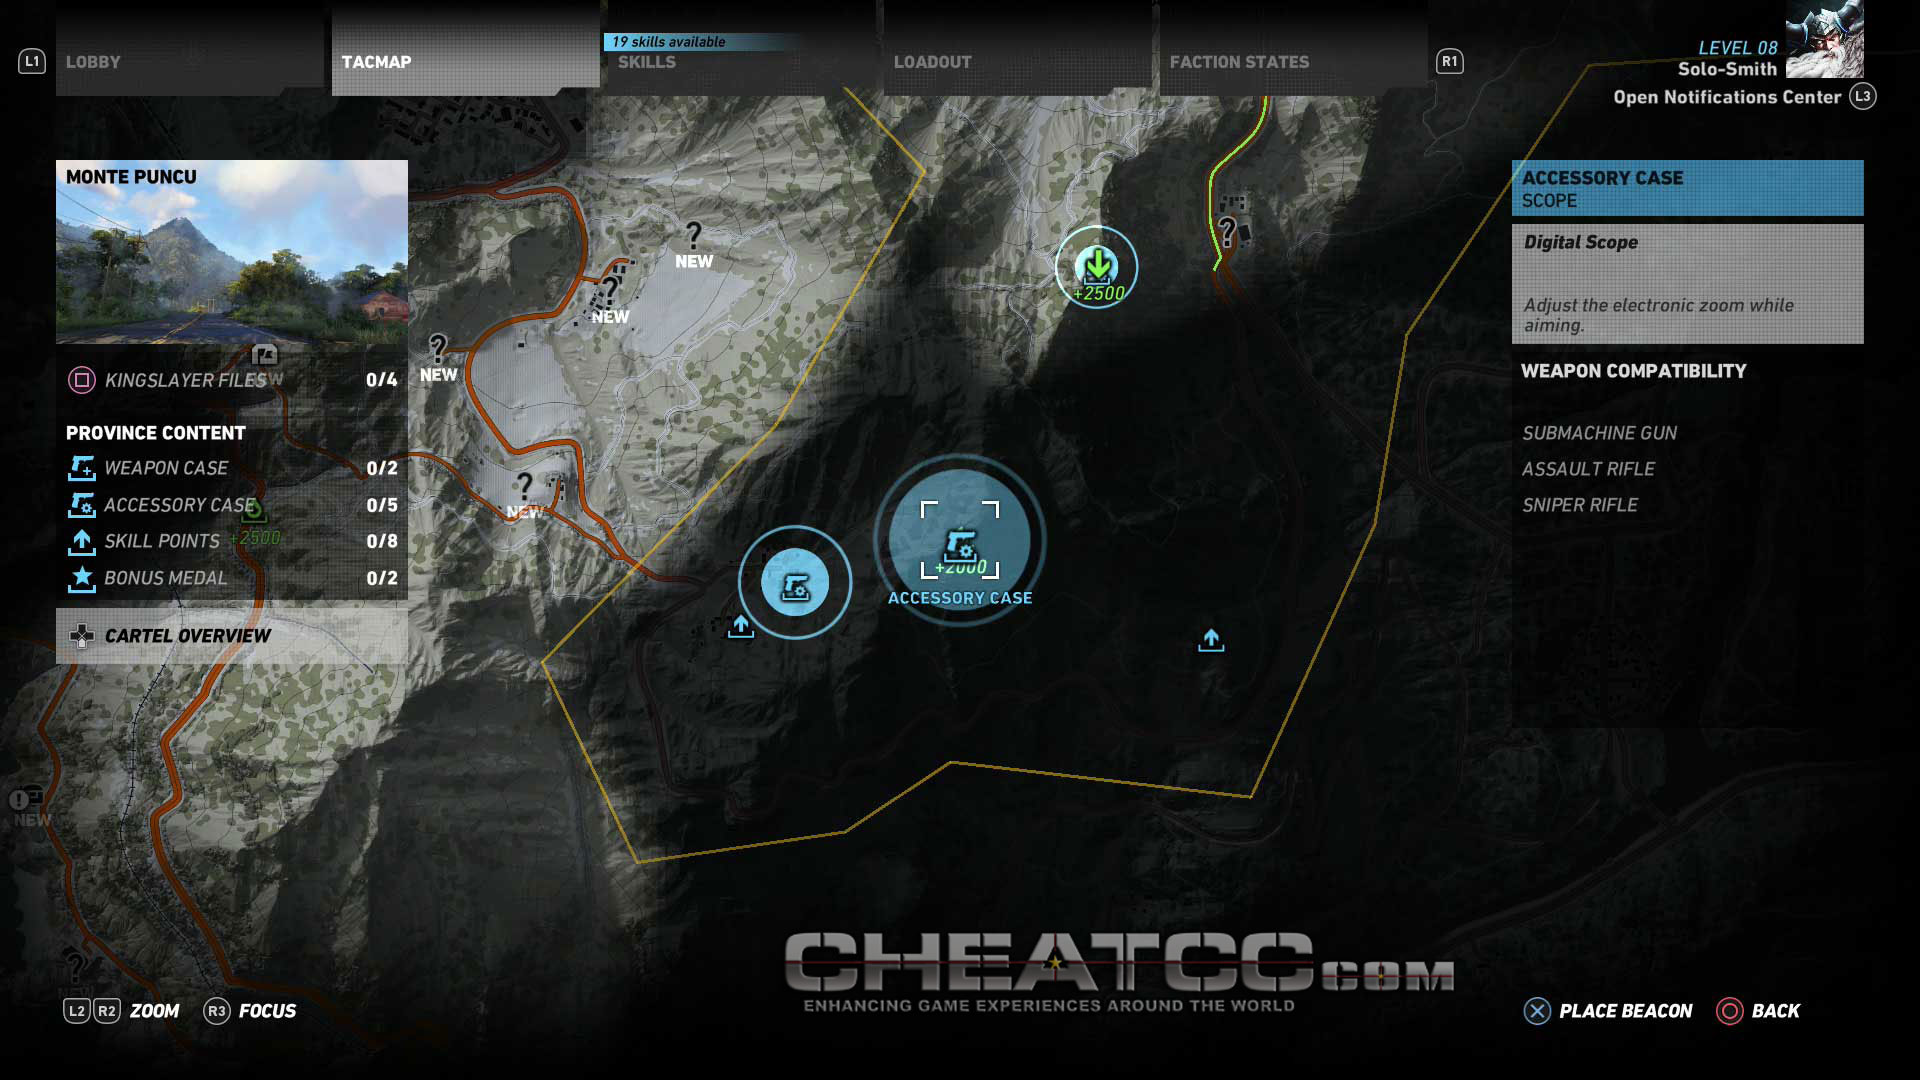 Tom Clancy's Ghost Recon: Wildlands Cheats, Codes, Cheat Codes